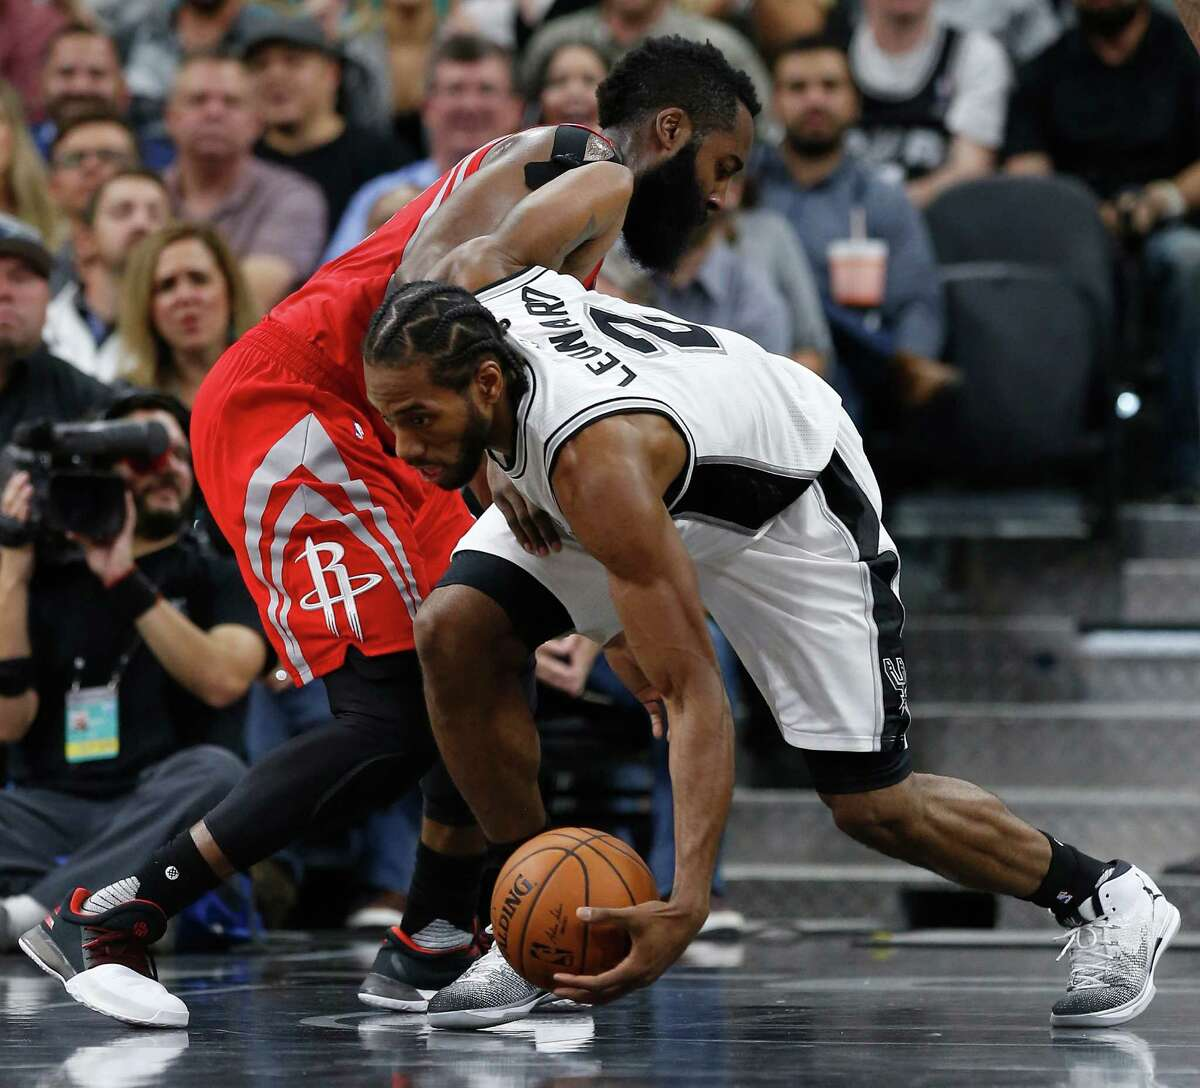 Spurs' Kawhi Leonard (02) scoops up a loose ball against Houston Rockets' James Harden (13) during their game at the AT&T Center on Wednesday, Nov. 9, 2016.